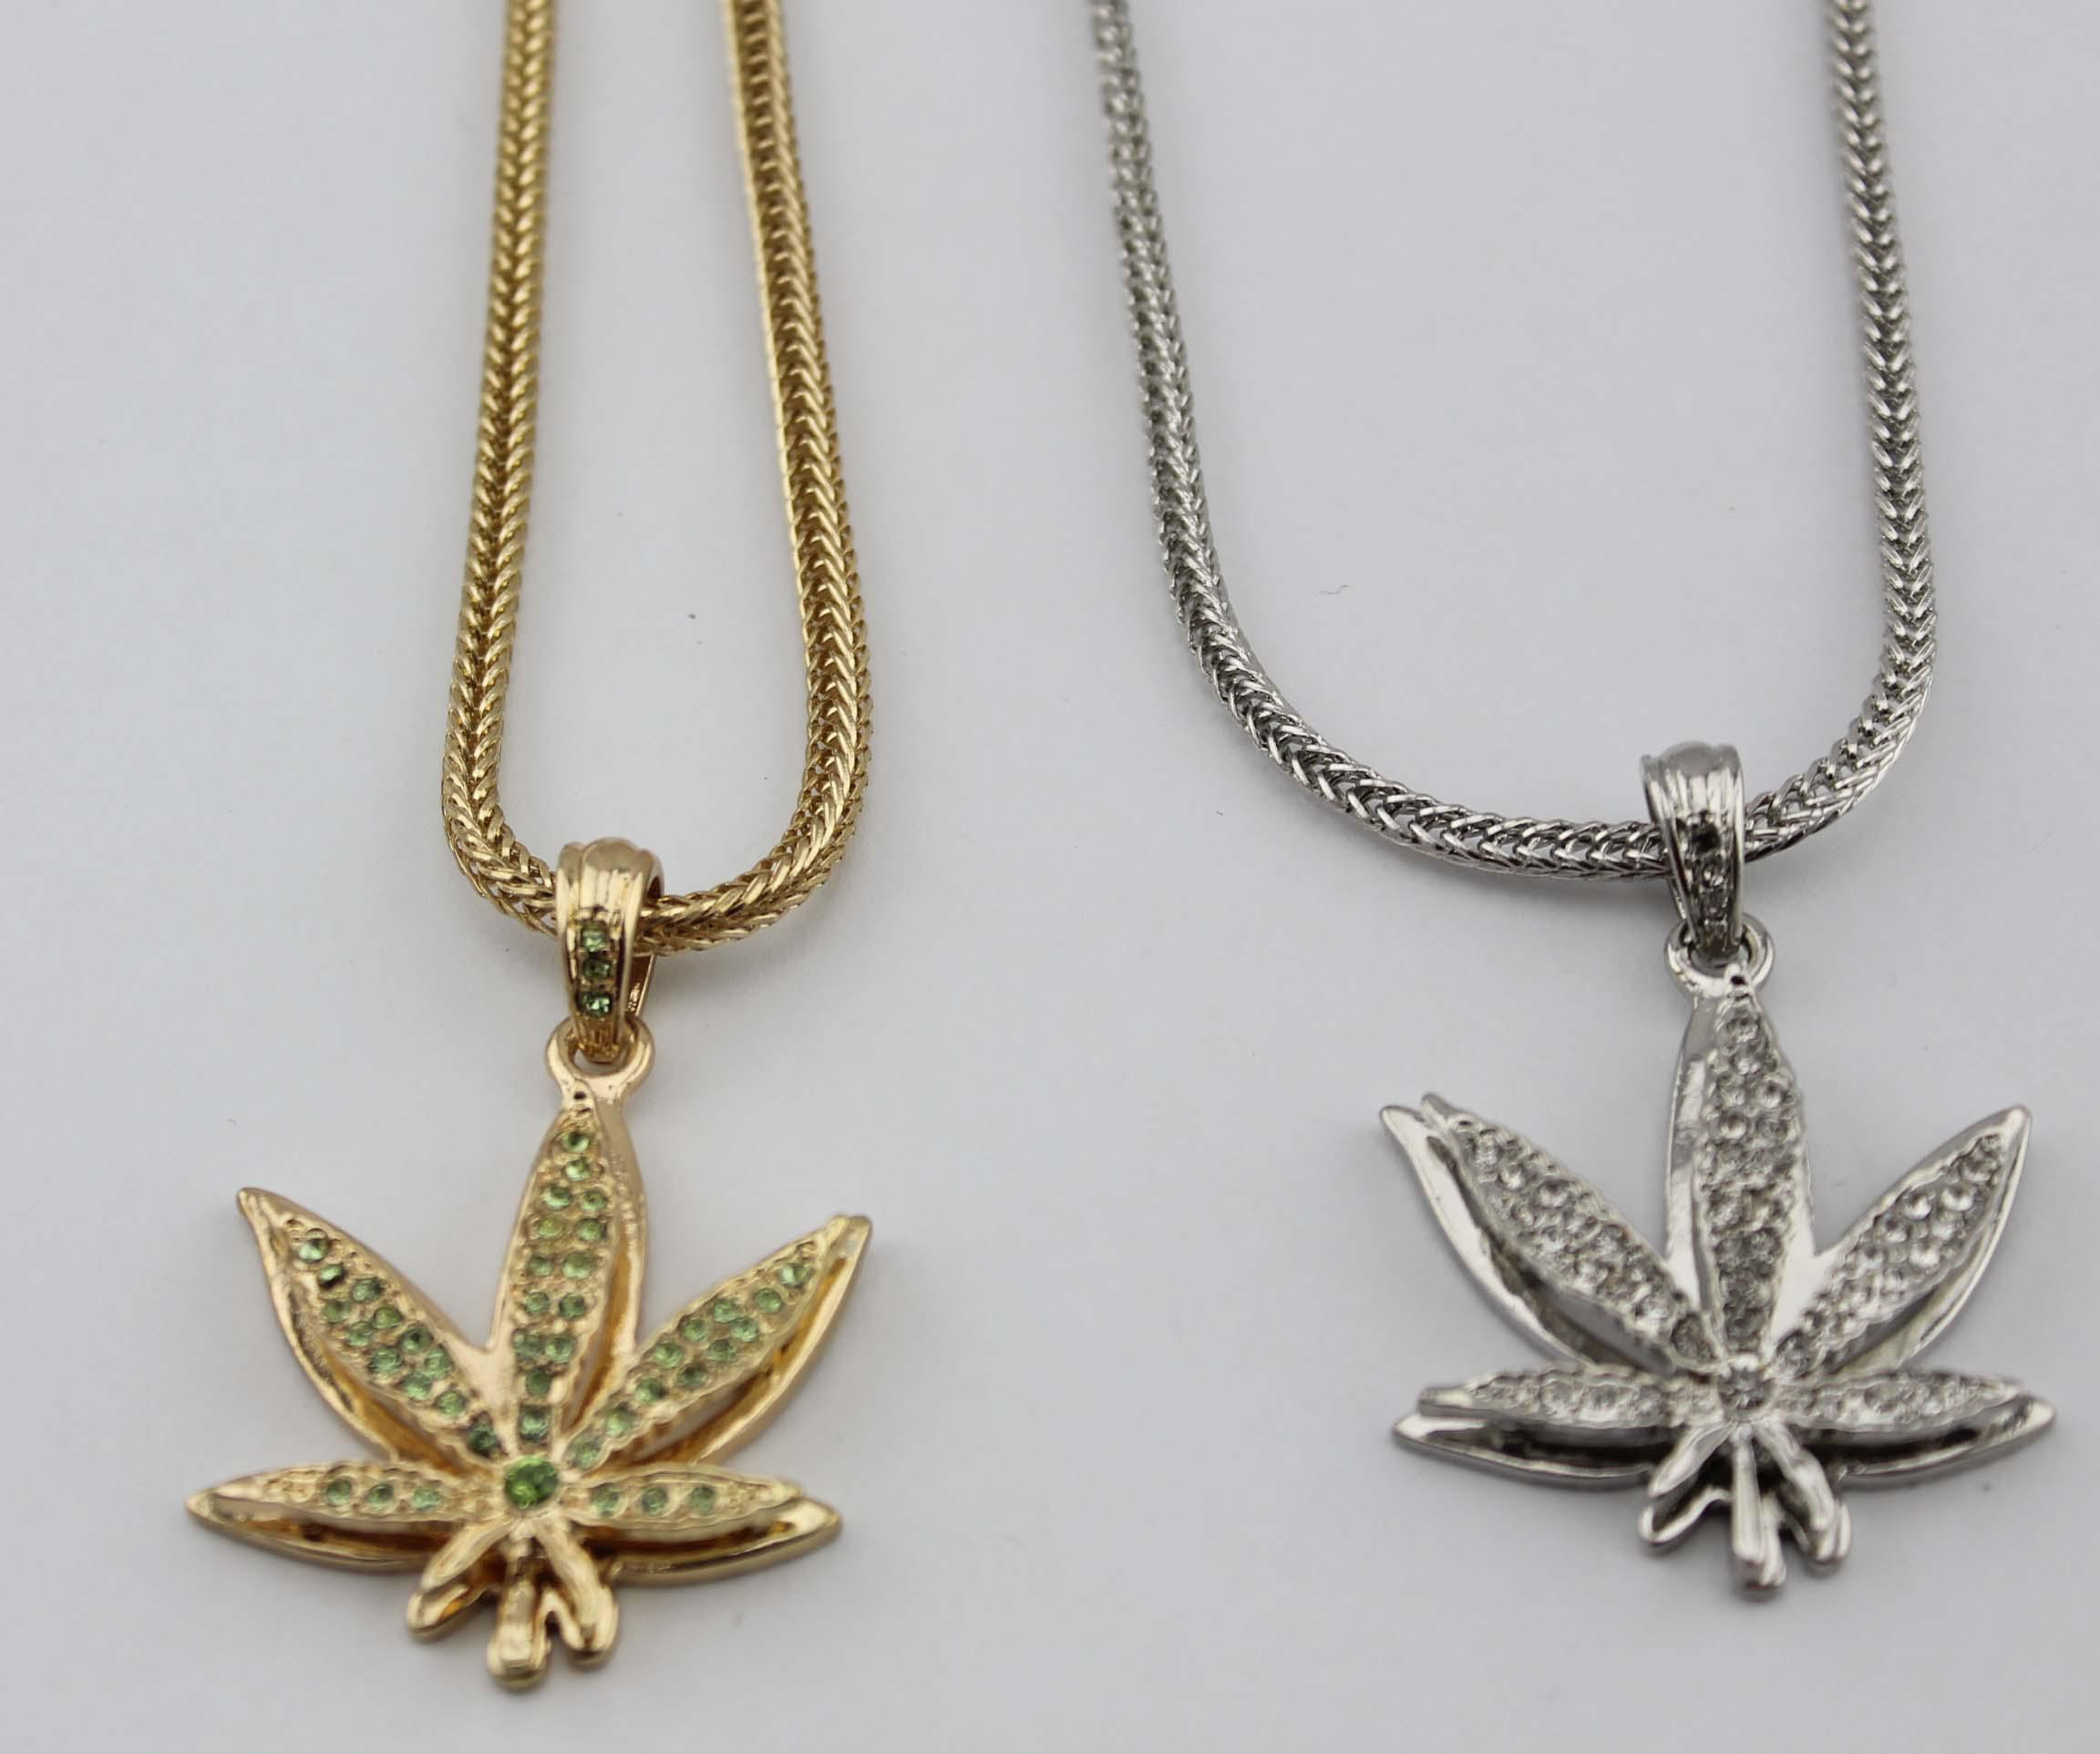 Wholesale hip hop jewelry men jewelry bling bling necklace iced out wholesale hip hop jewelry men jewelry bling bling necklace iced out flower pendants rappers faveriote letter pendant necklaces horseshoe pendant necklace aloadofball